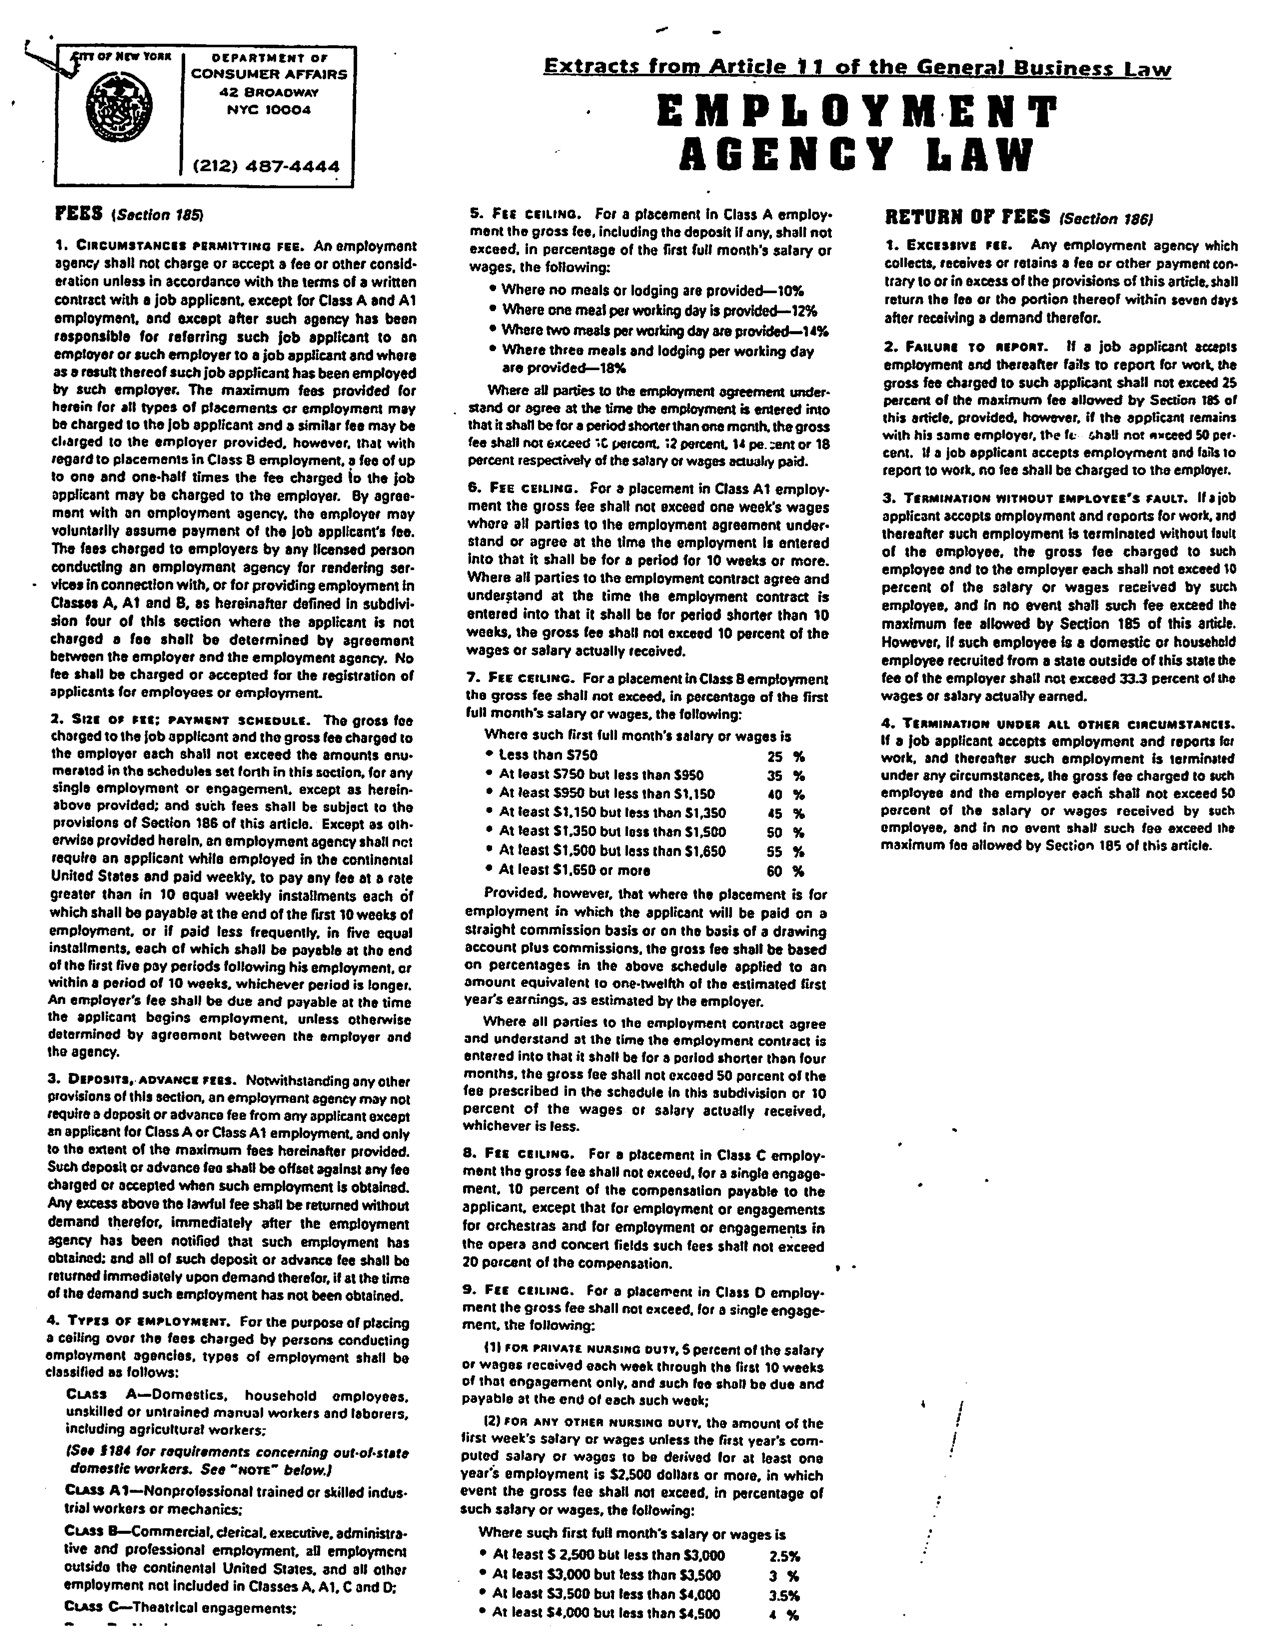 Laws of New York General Business Article 11, excerpt of Sections 185 and 186 of the New York State Employment Agency Law.